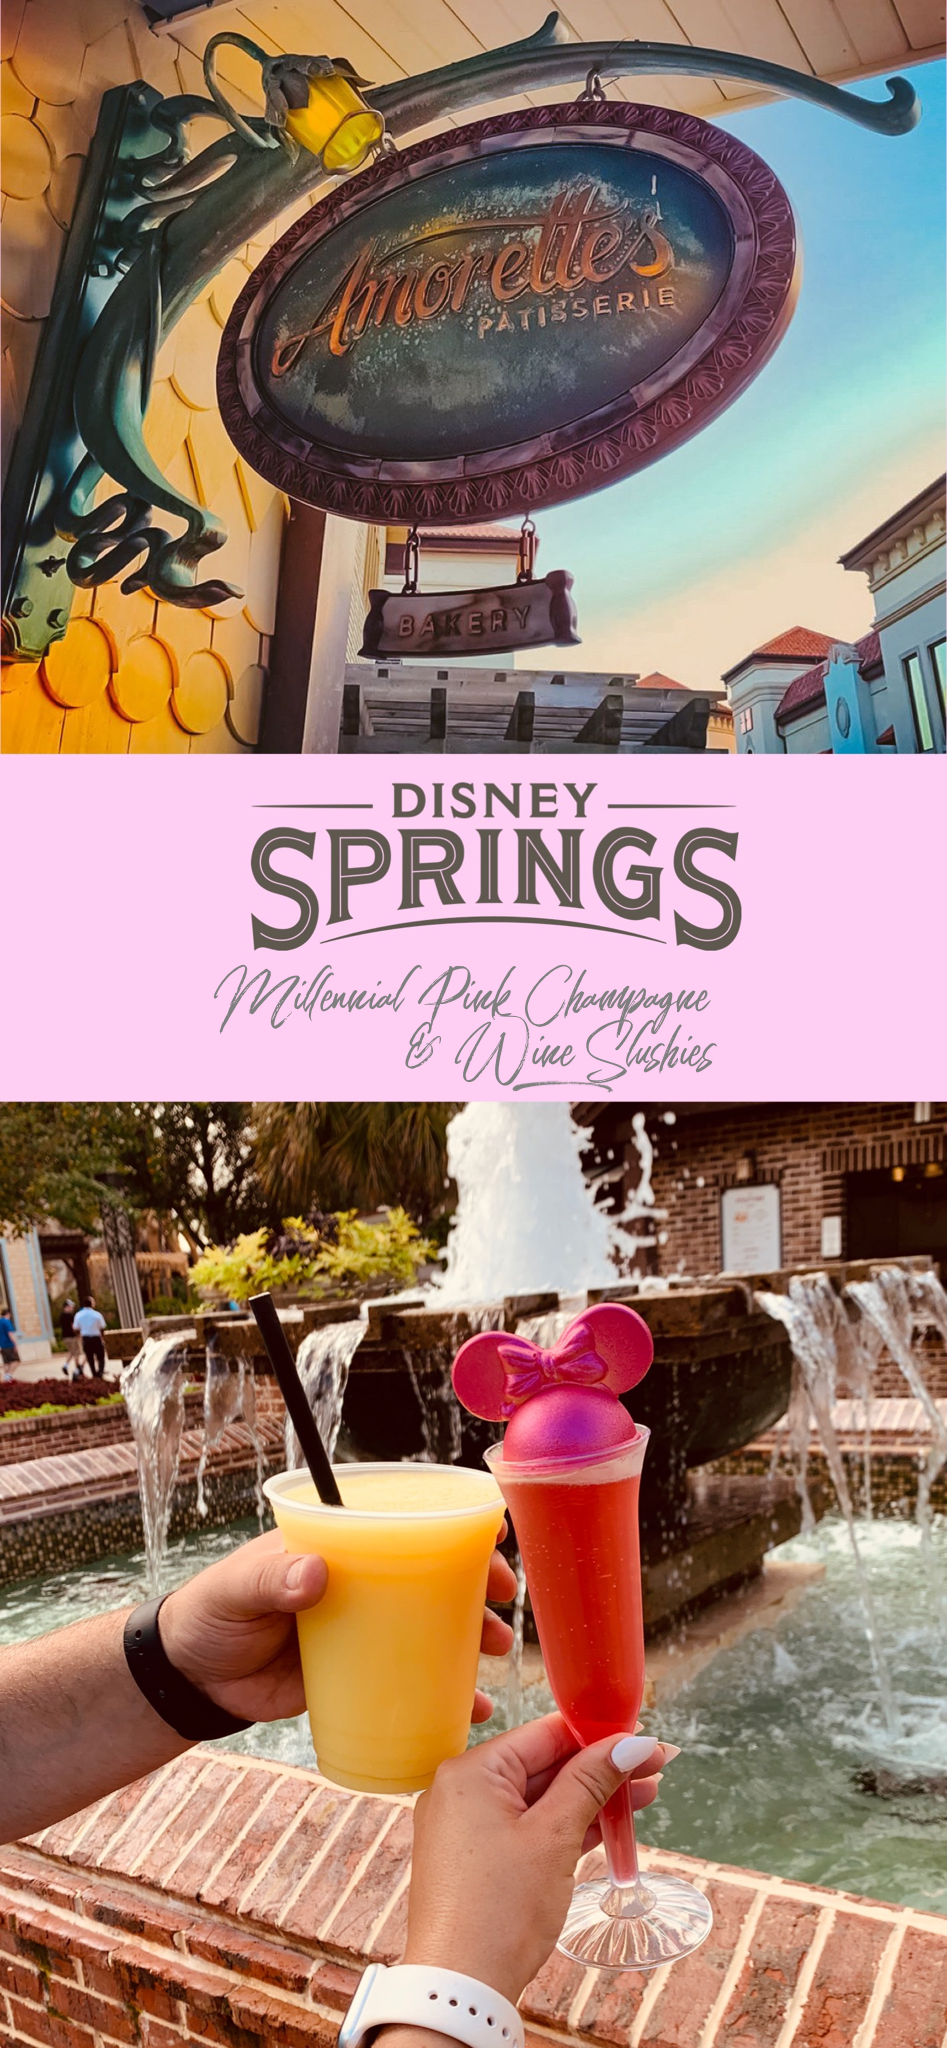 Disney Springs Millennial Pink Champagne & Wine Slushies